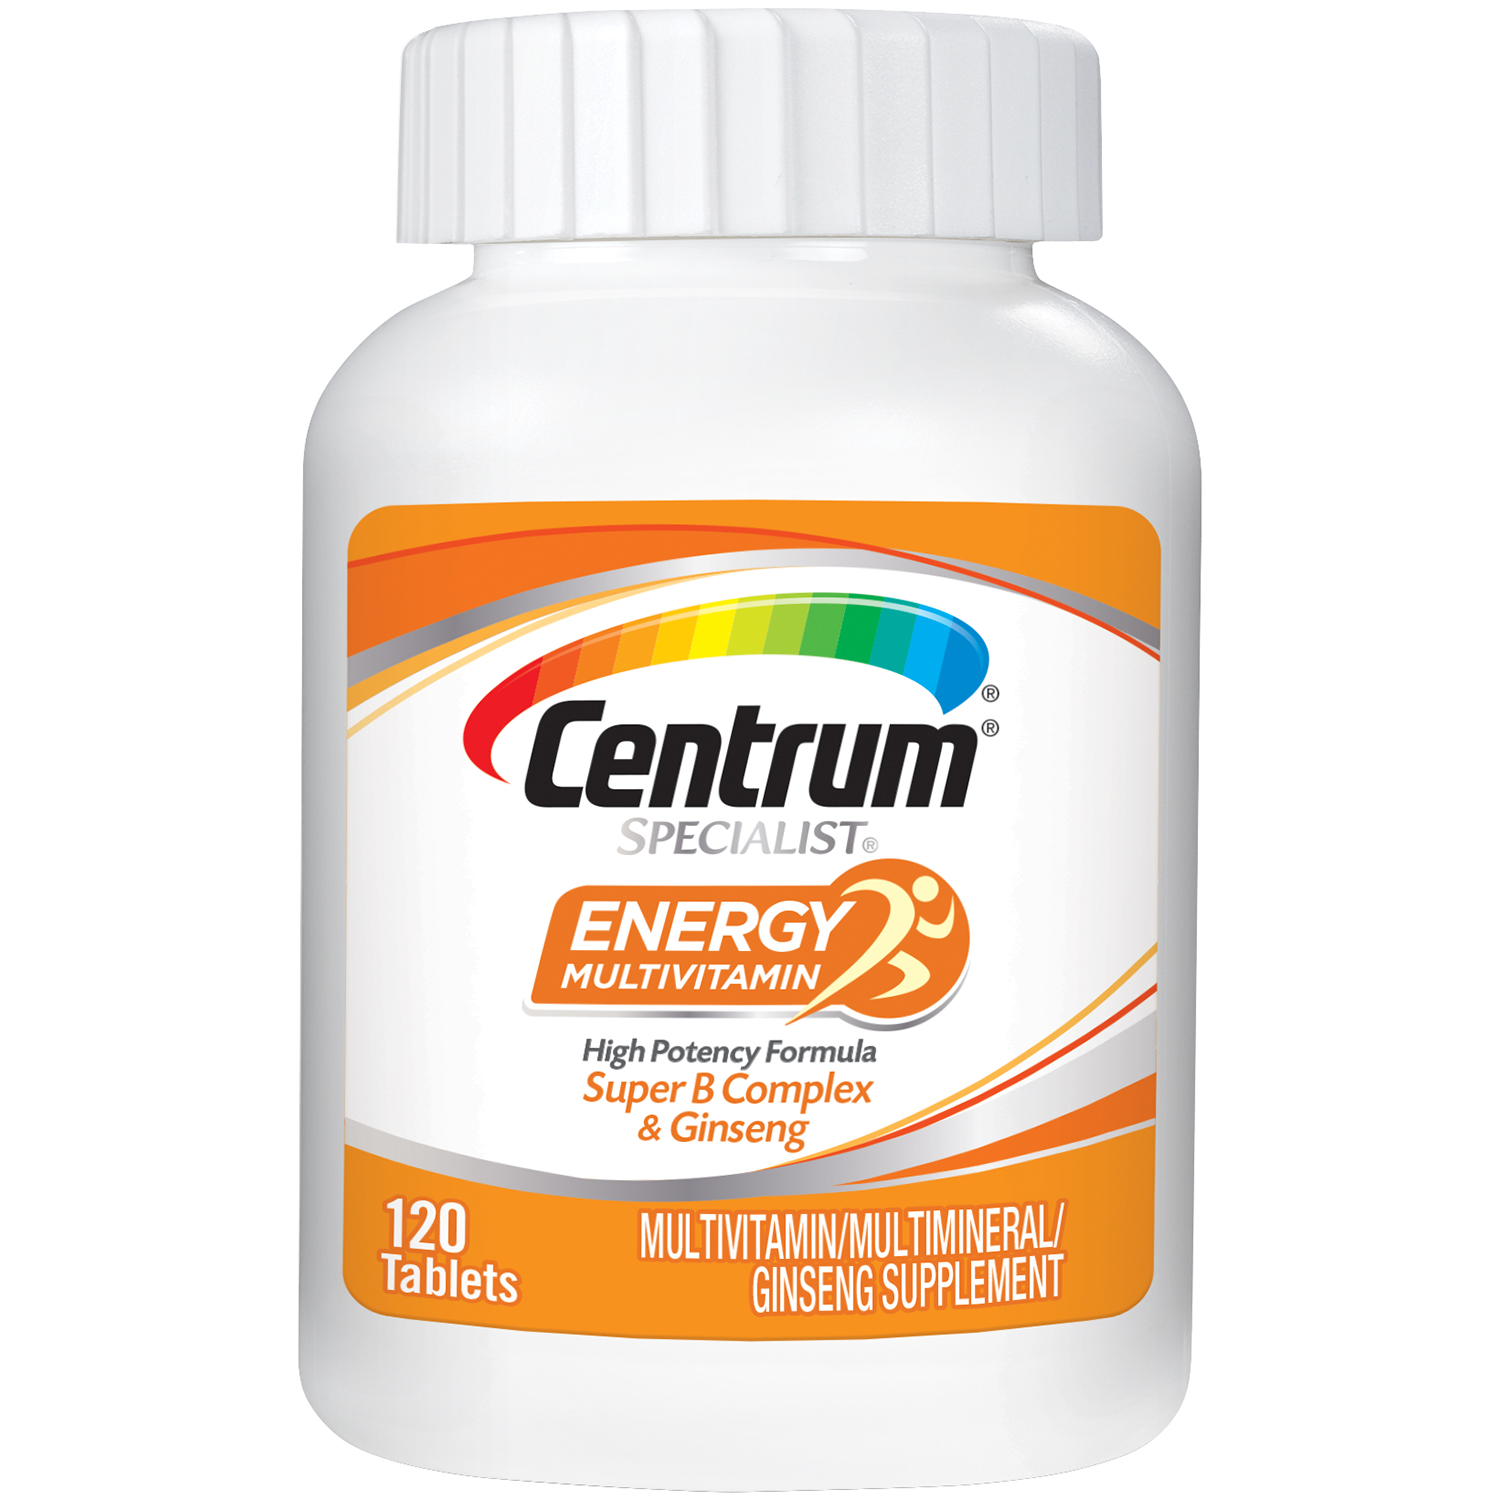 Centrum Specialist Energy Vitamin Multivitamin Multimineral Supplement With Super B Complex Vitamins And Ginseng 120 Count Walmart Com Walmart Com